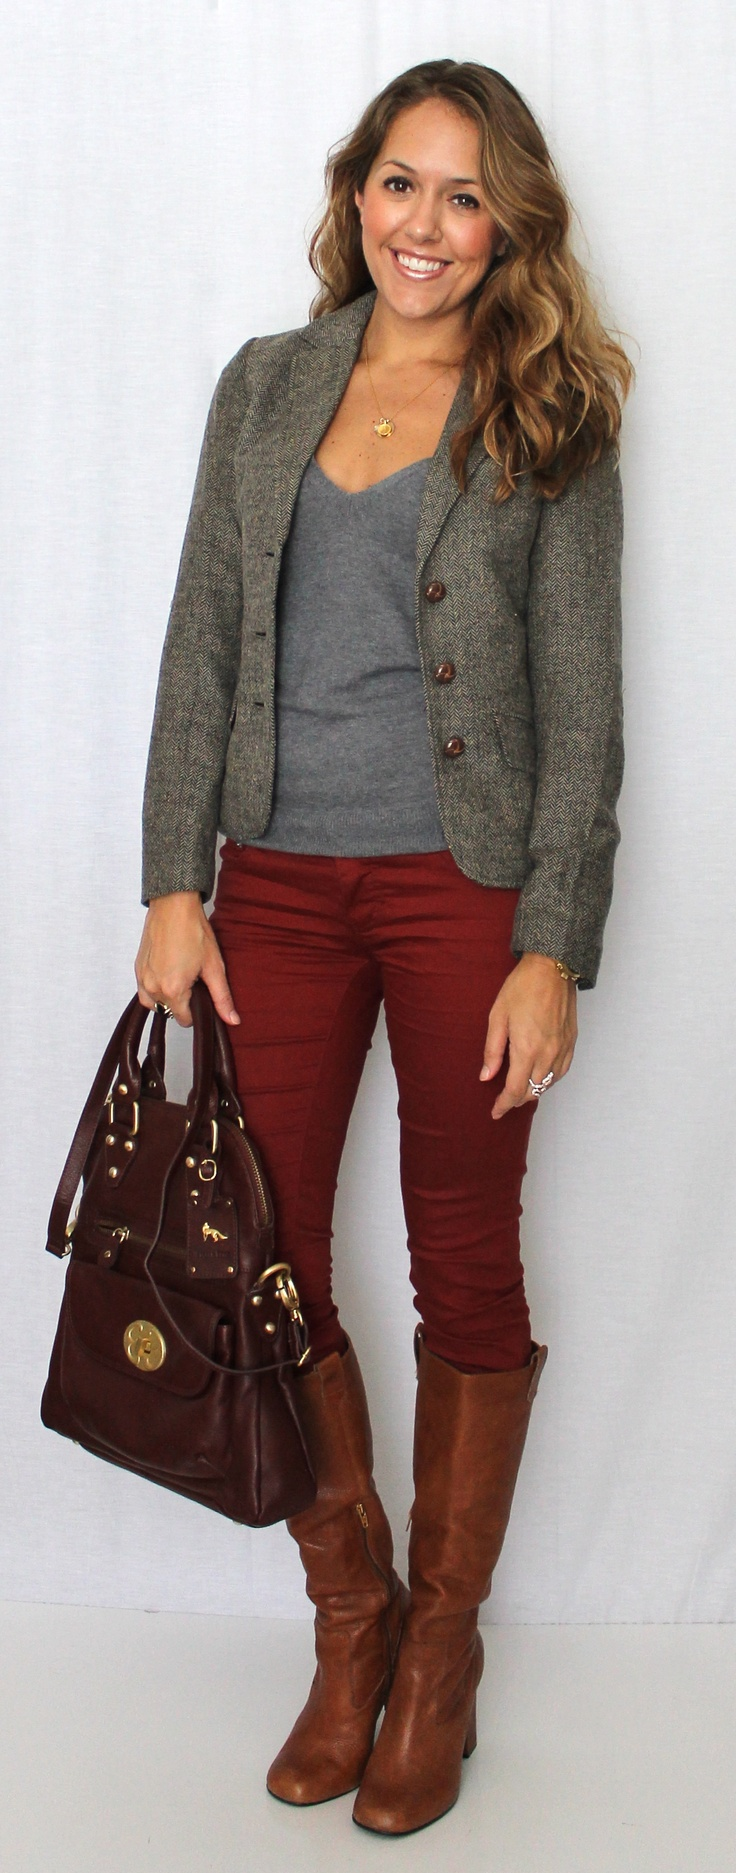 gray blazer and burgundy jeans and brown boots. I have these pieces.